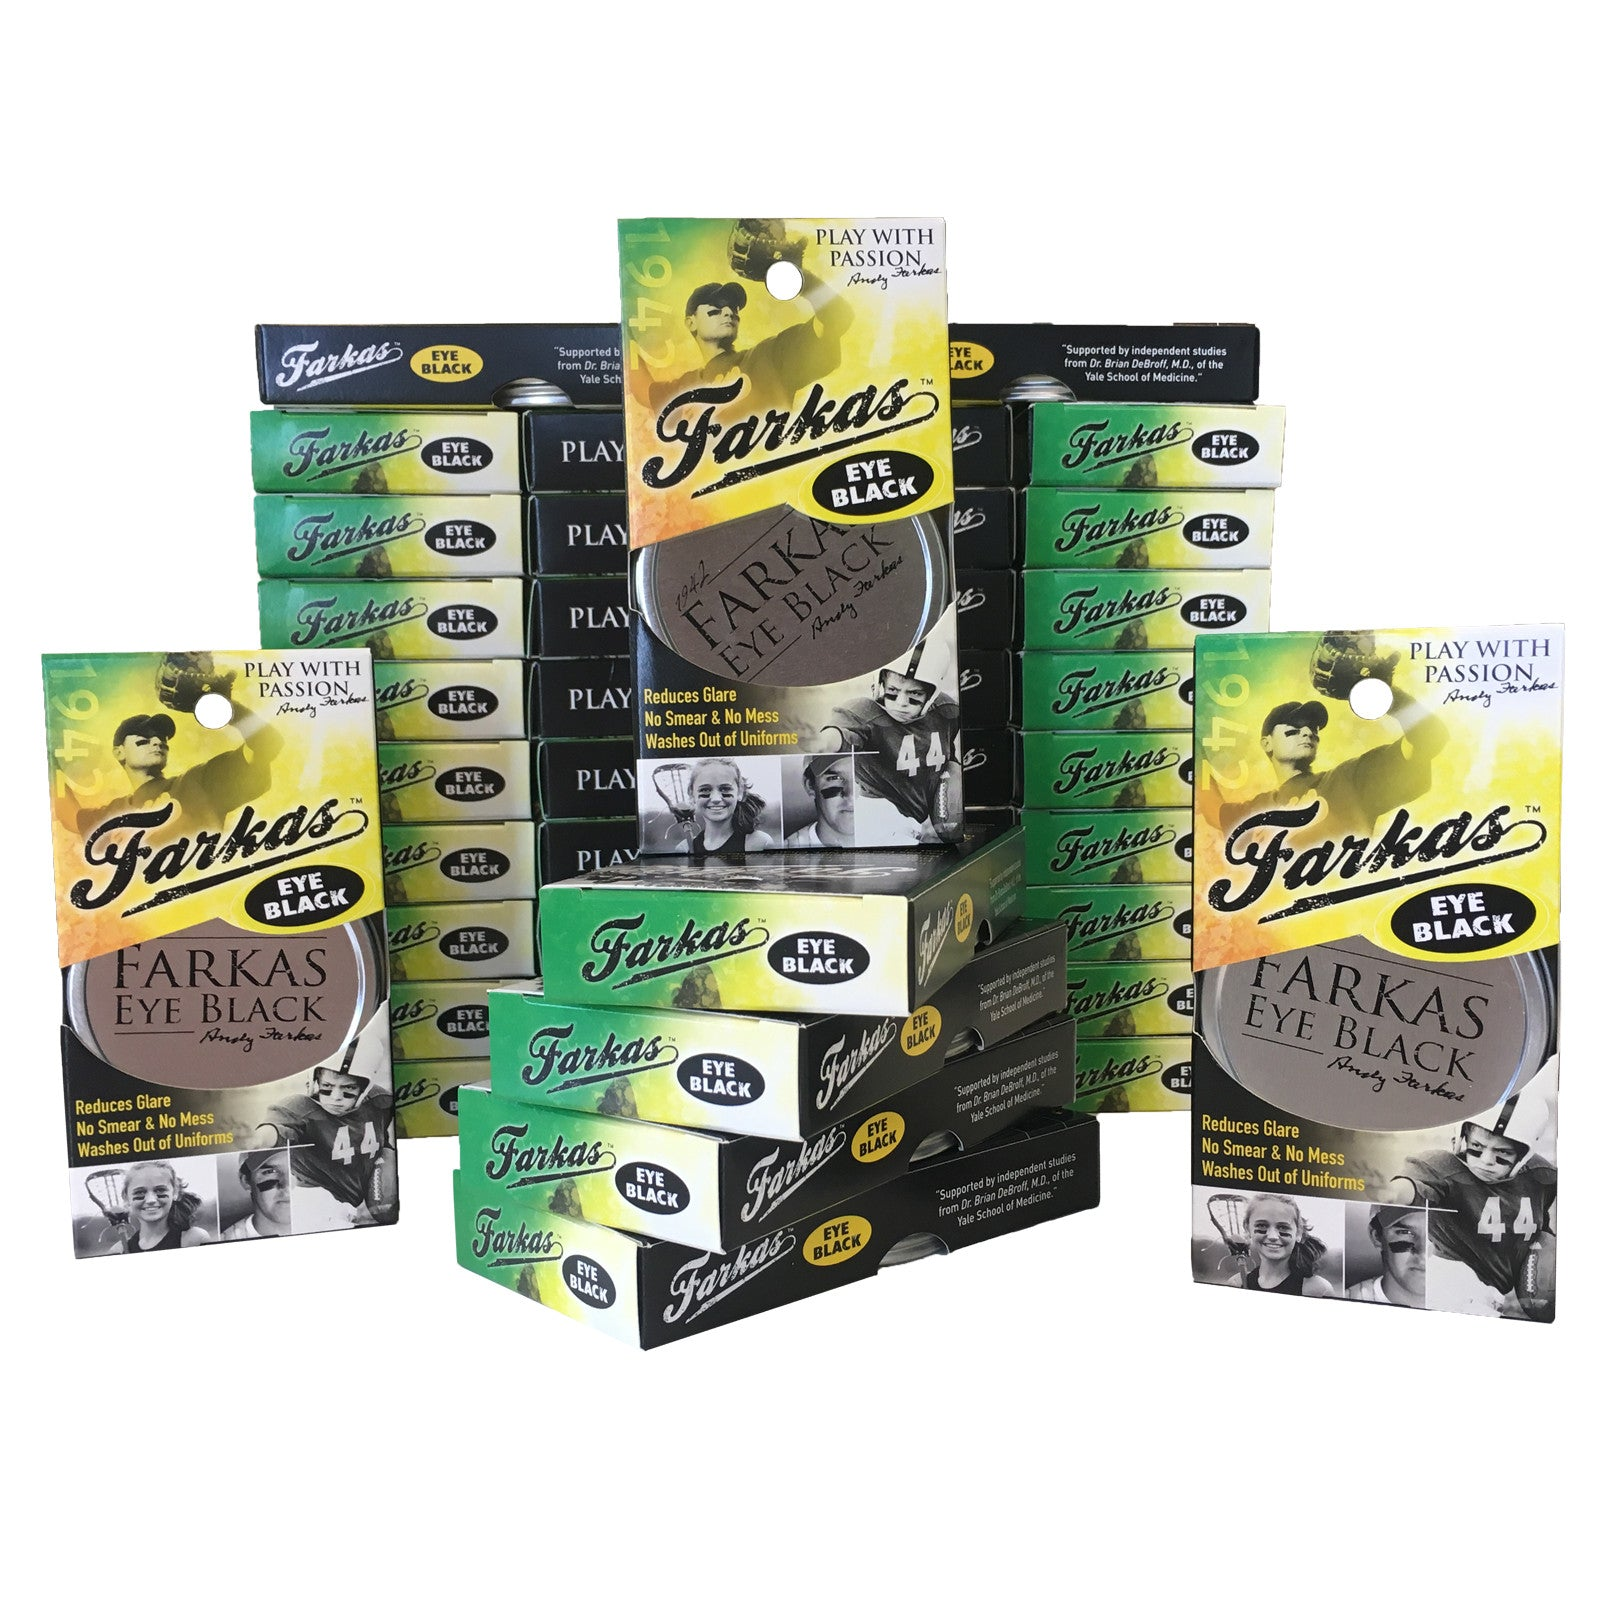 Farkas Eye Black- 1 box (12 tins)